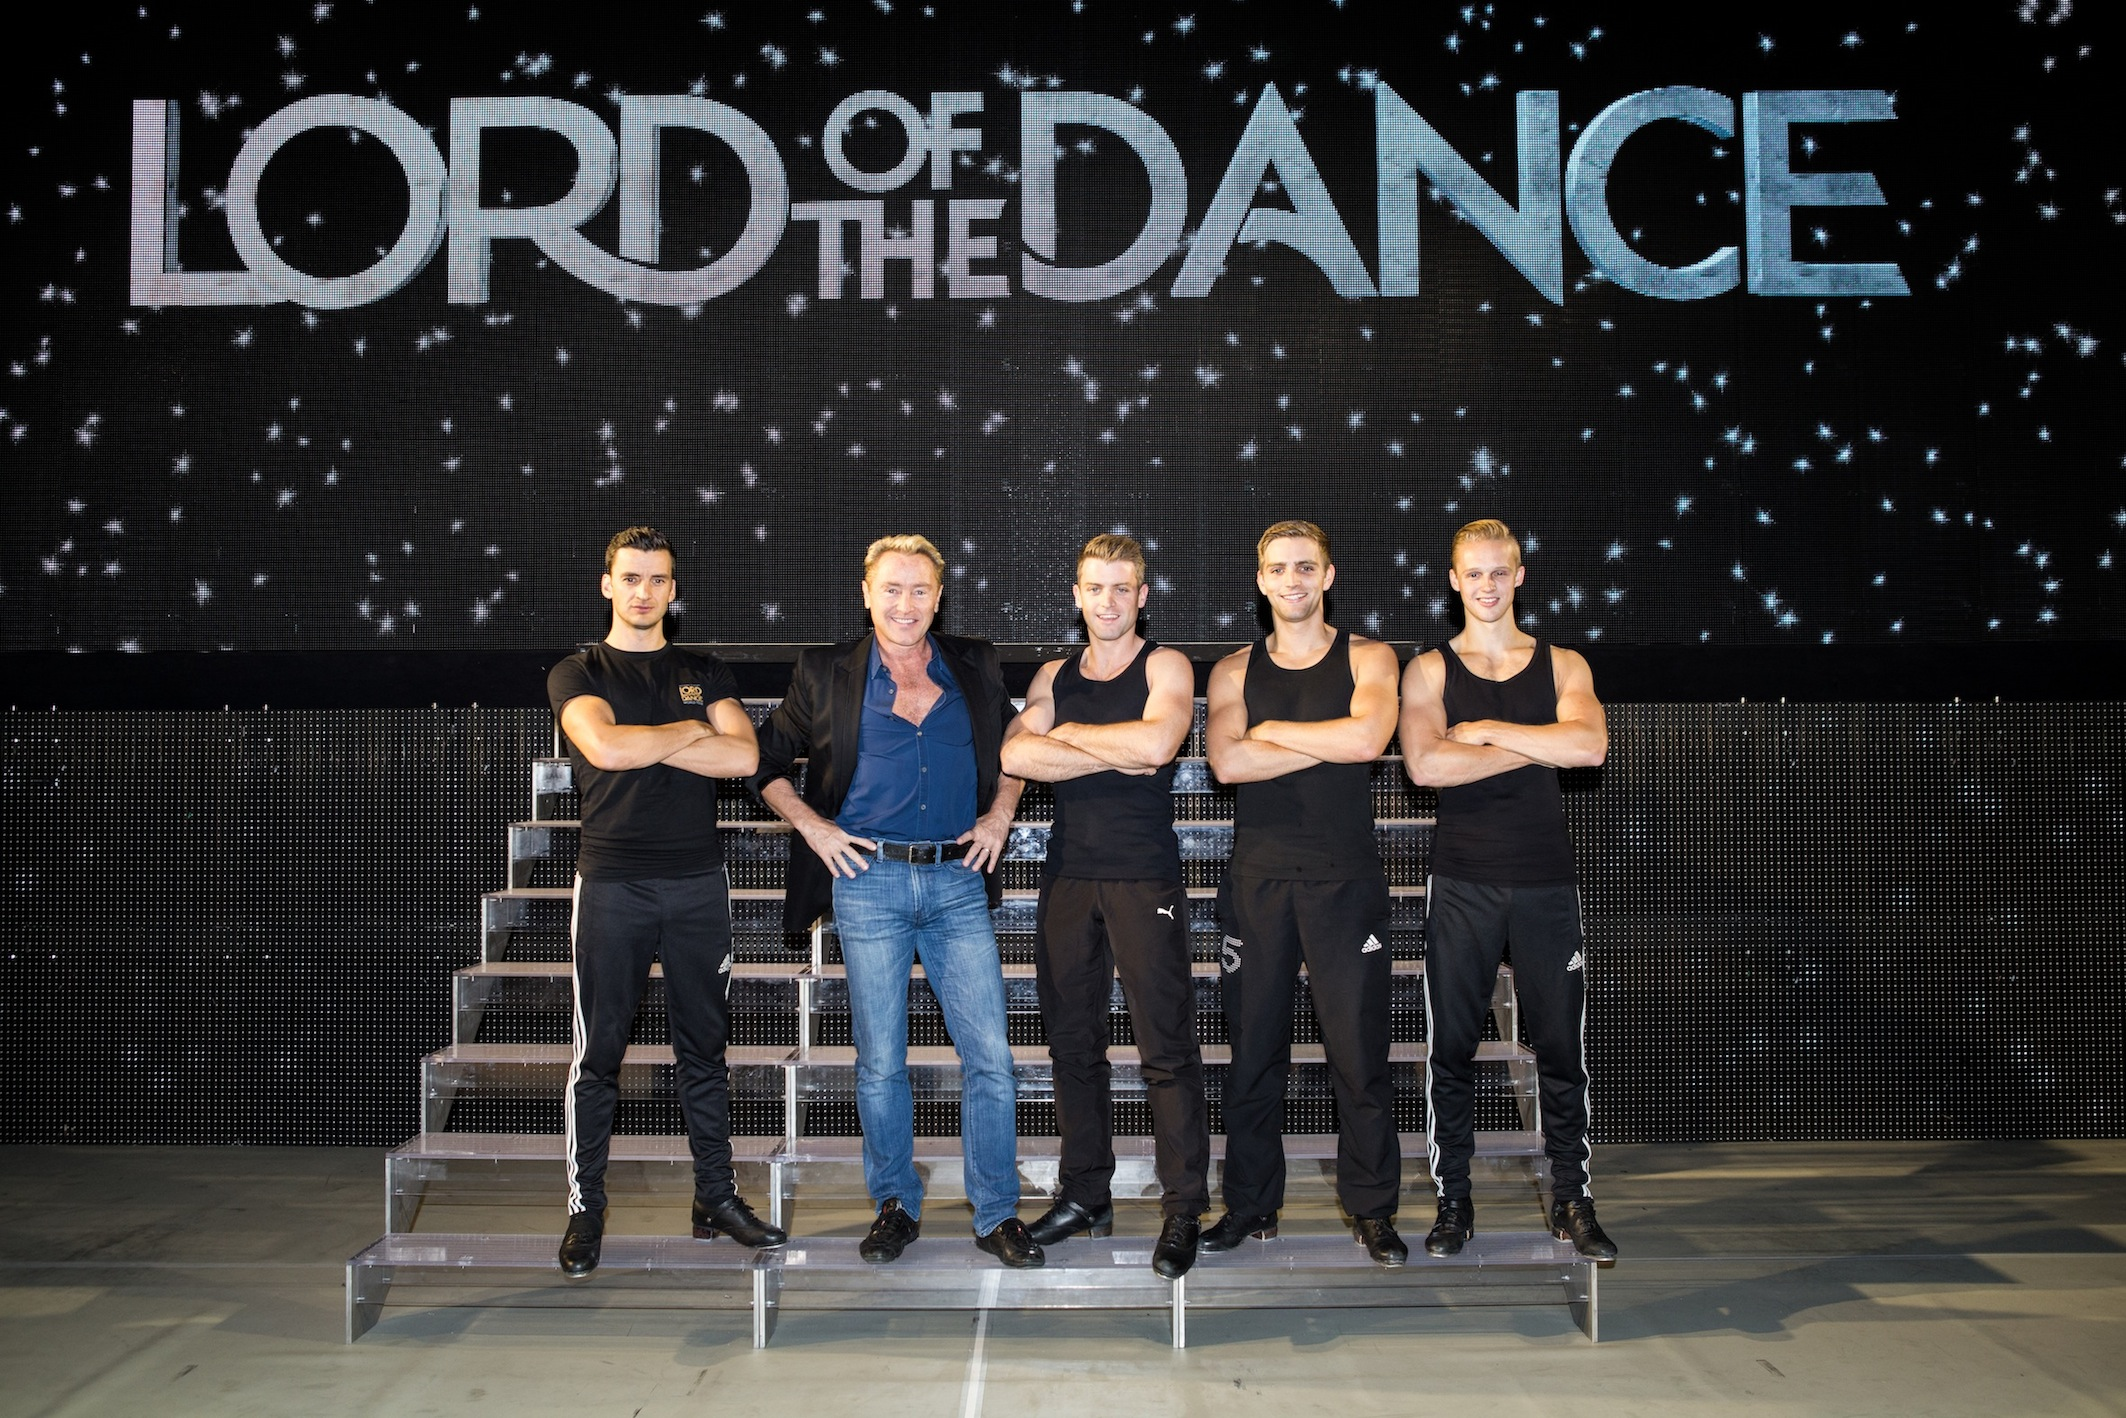 Michael Flatley with young lords of the dance Tom Cunningham, James Keegan, Morgan Comer and Matt Smith at the London Palladium